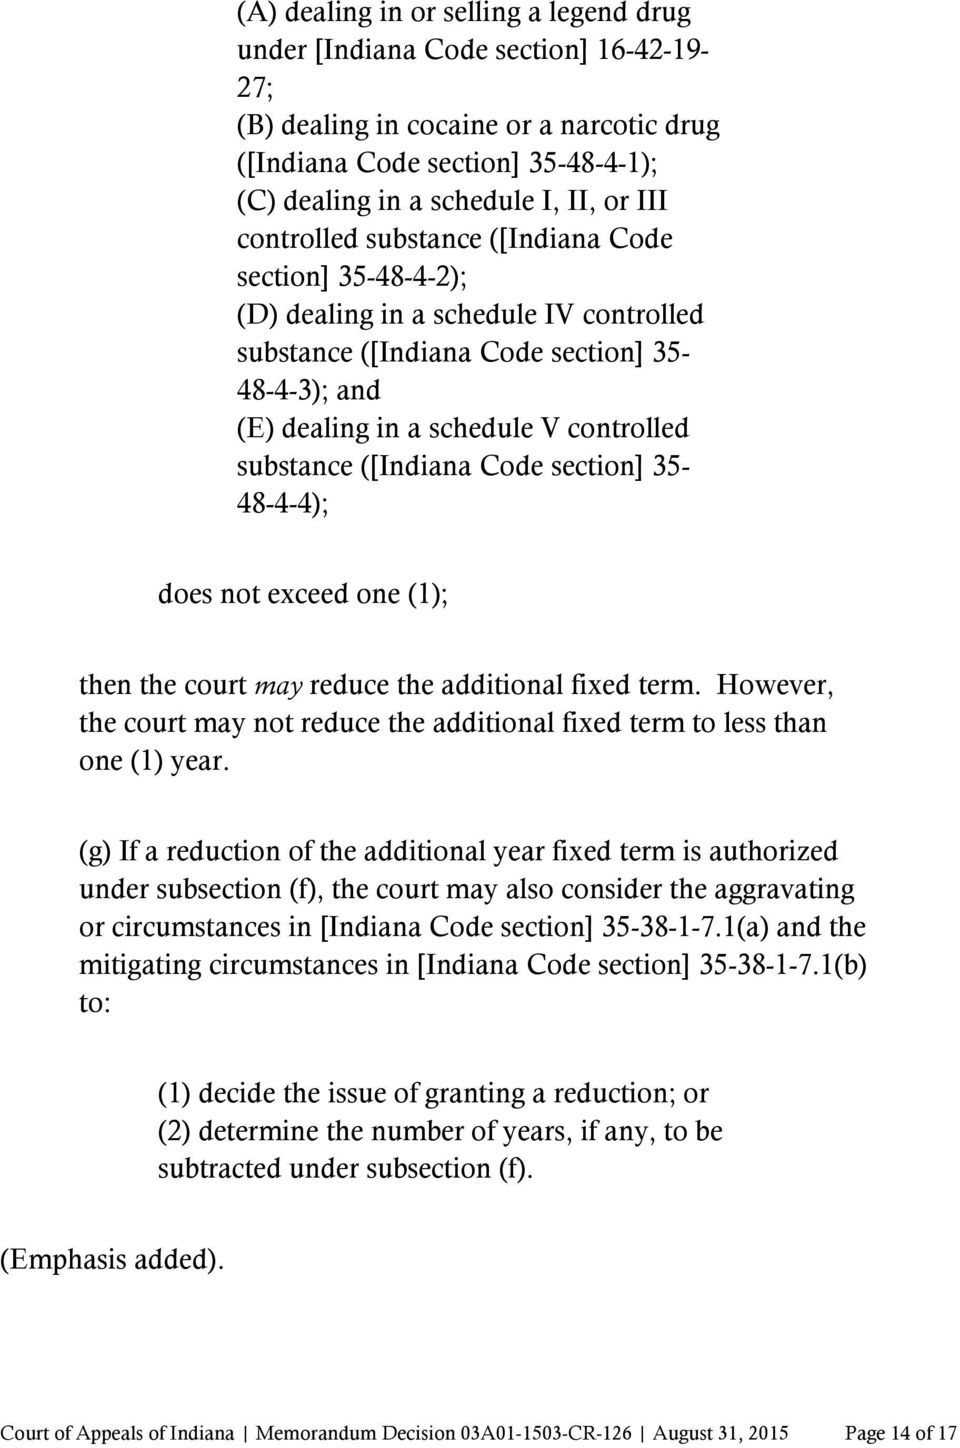 ([Indiana Code section] 35-48-4-4); does not exceed one (1); then the court may reduce the additional fixed term. However, the court may not reduce the additional fixed term to less than one (1) year.